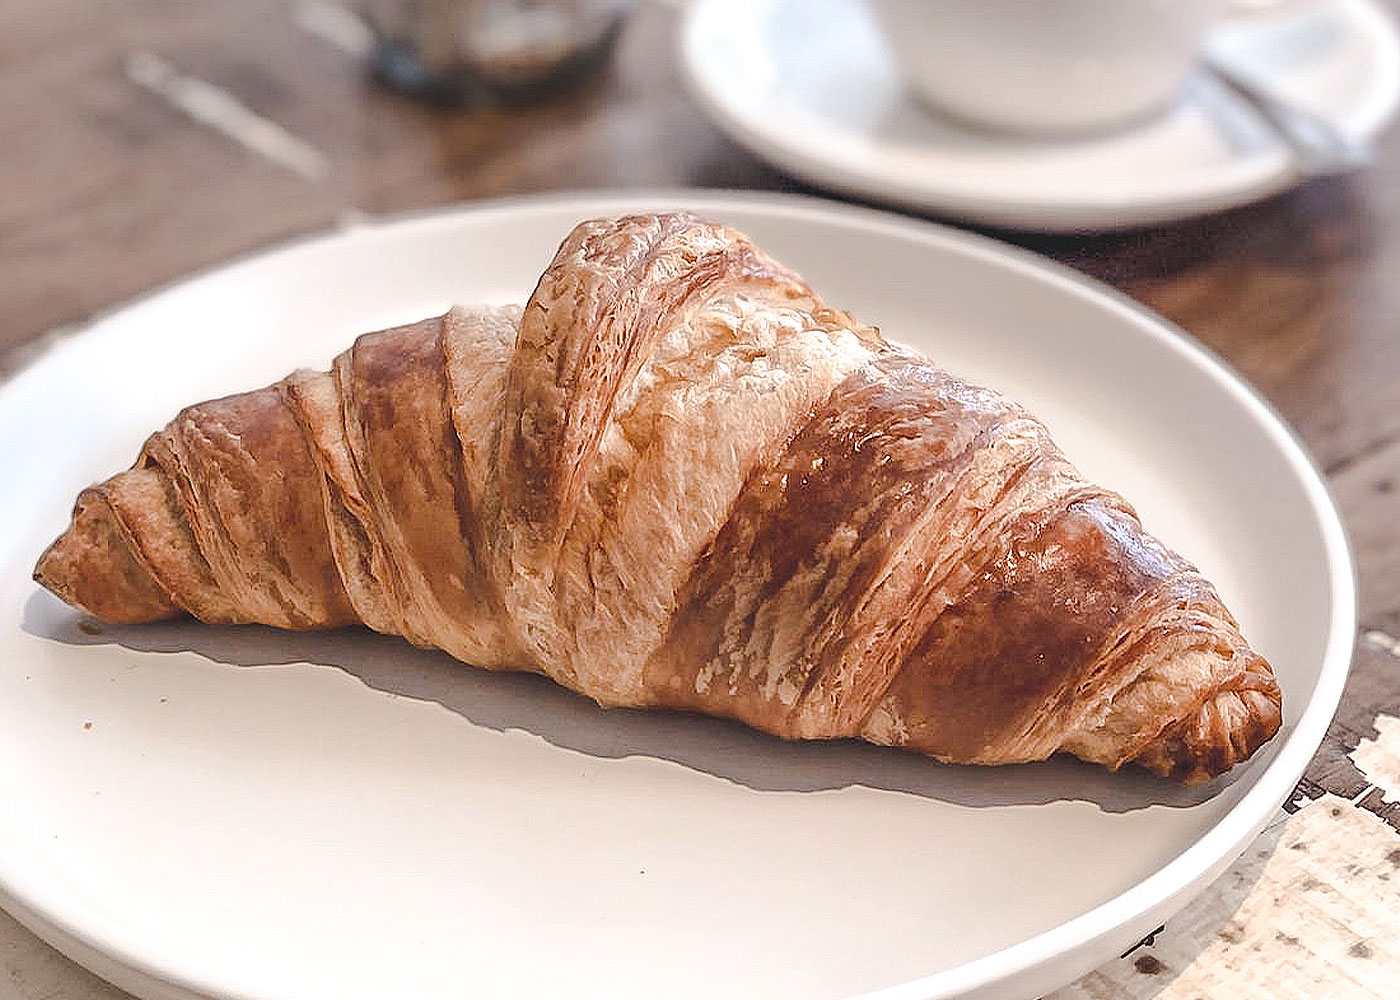 Sydney Croissant Cafe - French Basket